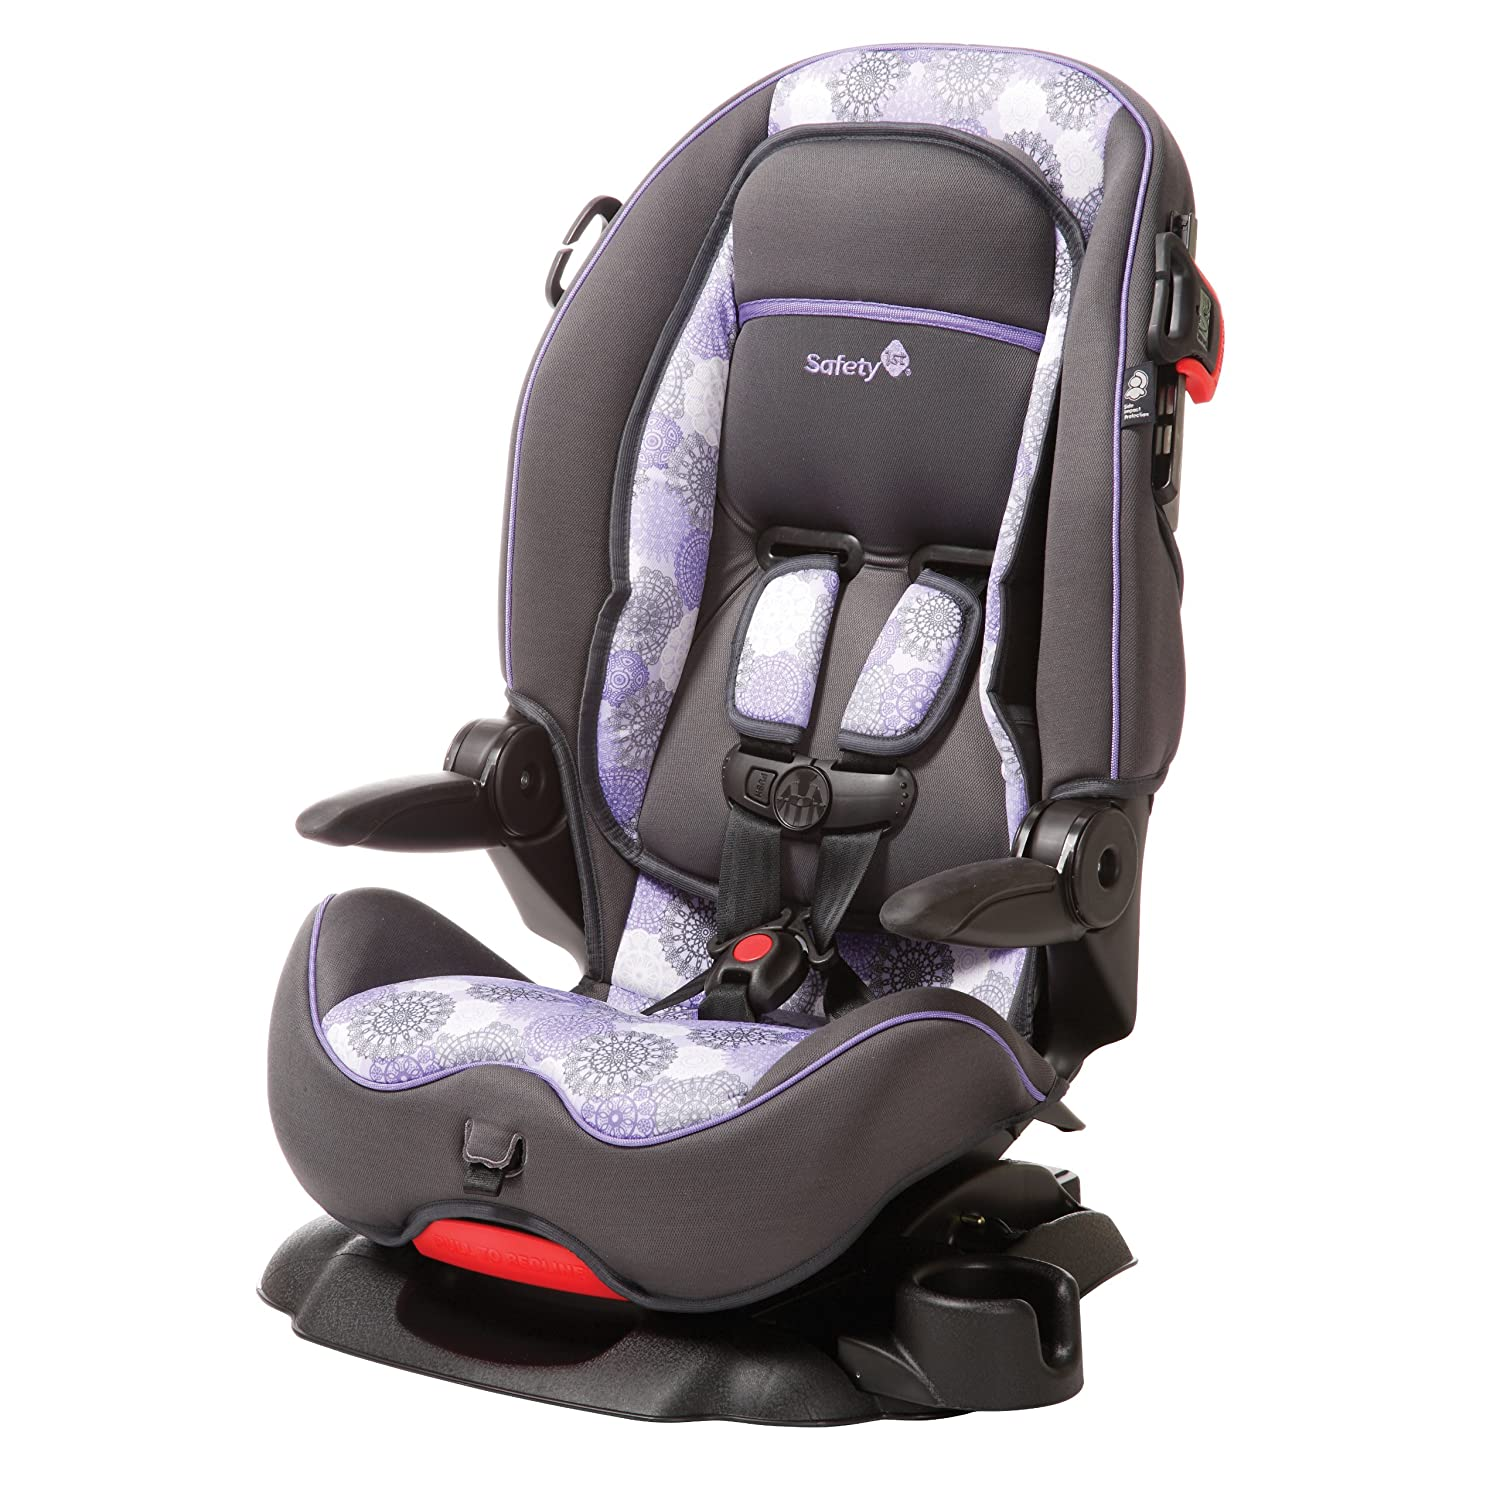 First Safety Car Seats Safety 1st Summit Car Seat